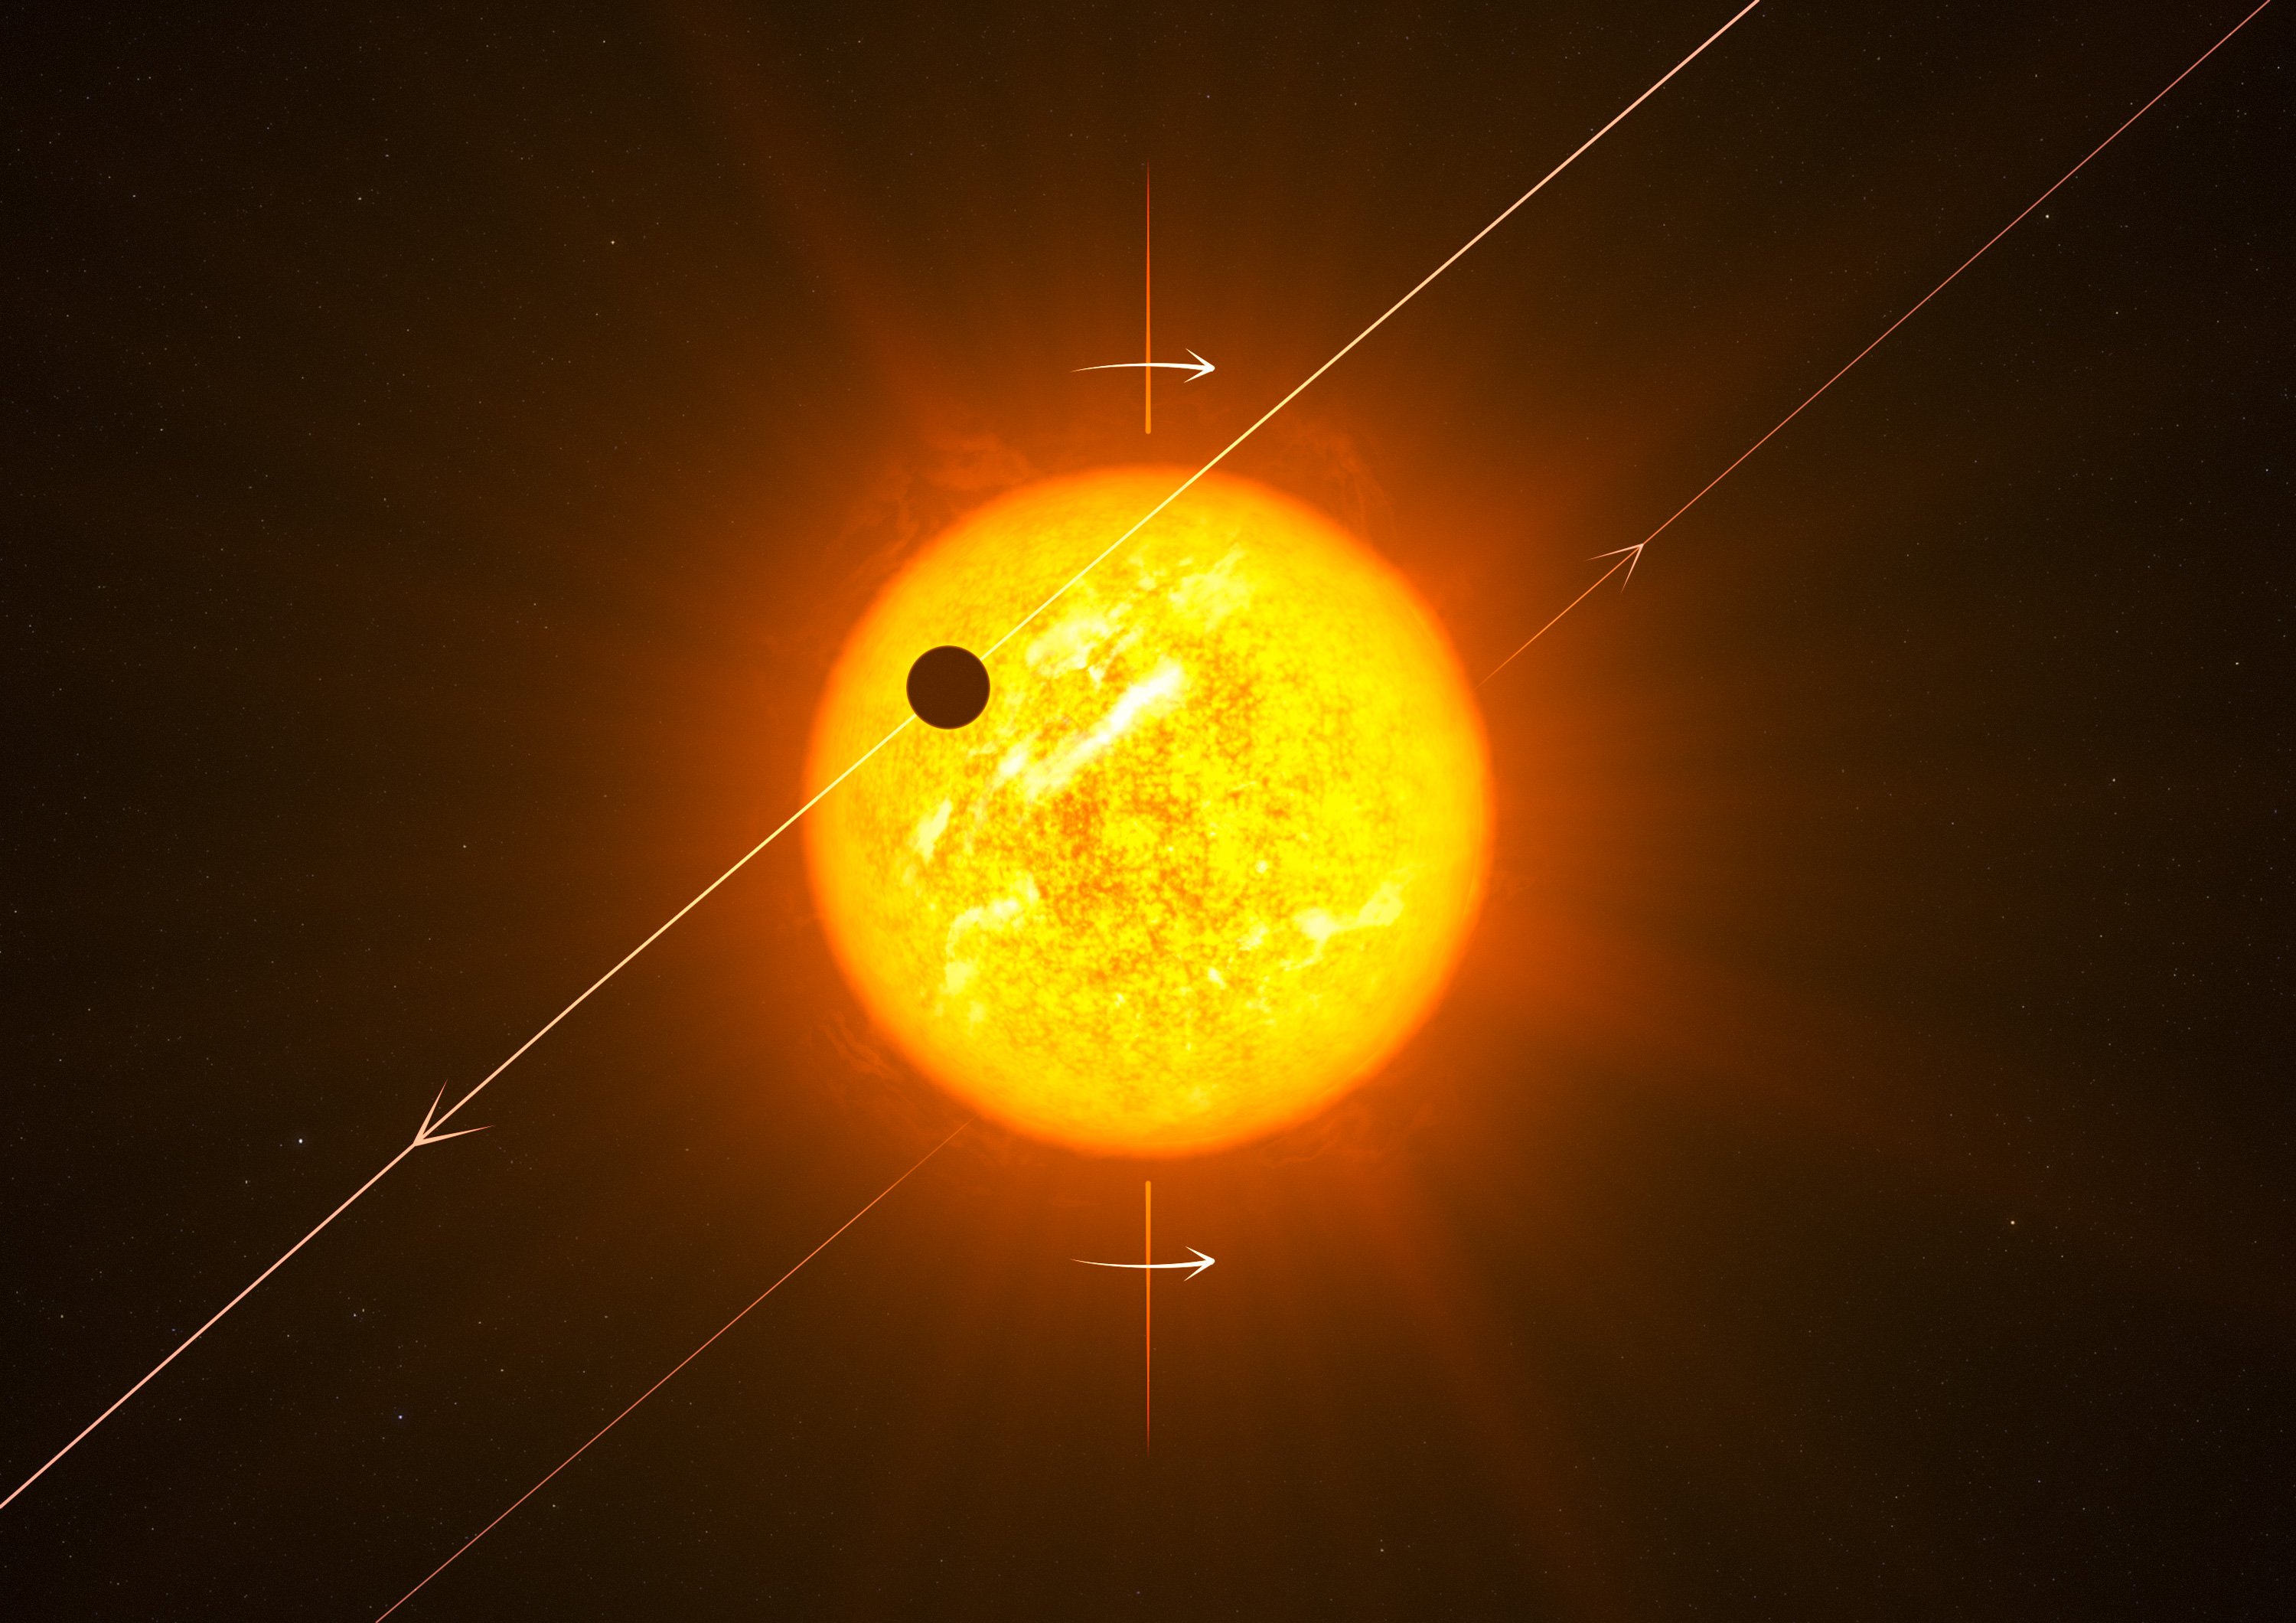 File:Exoplanet retrograde WASP-8b.jpg - Wikimedia Commons